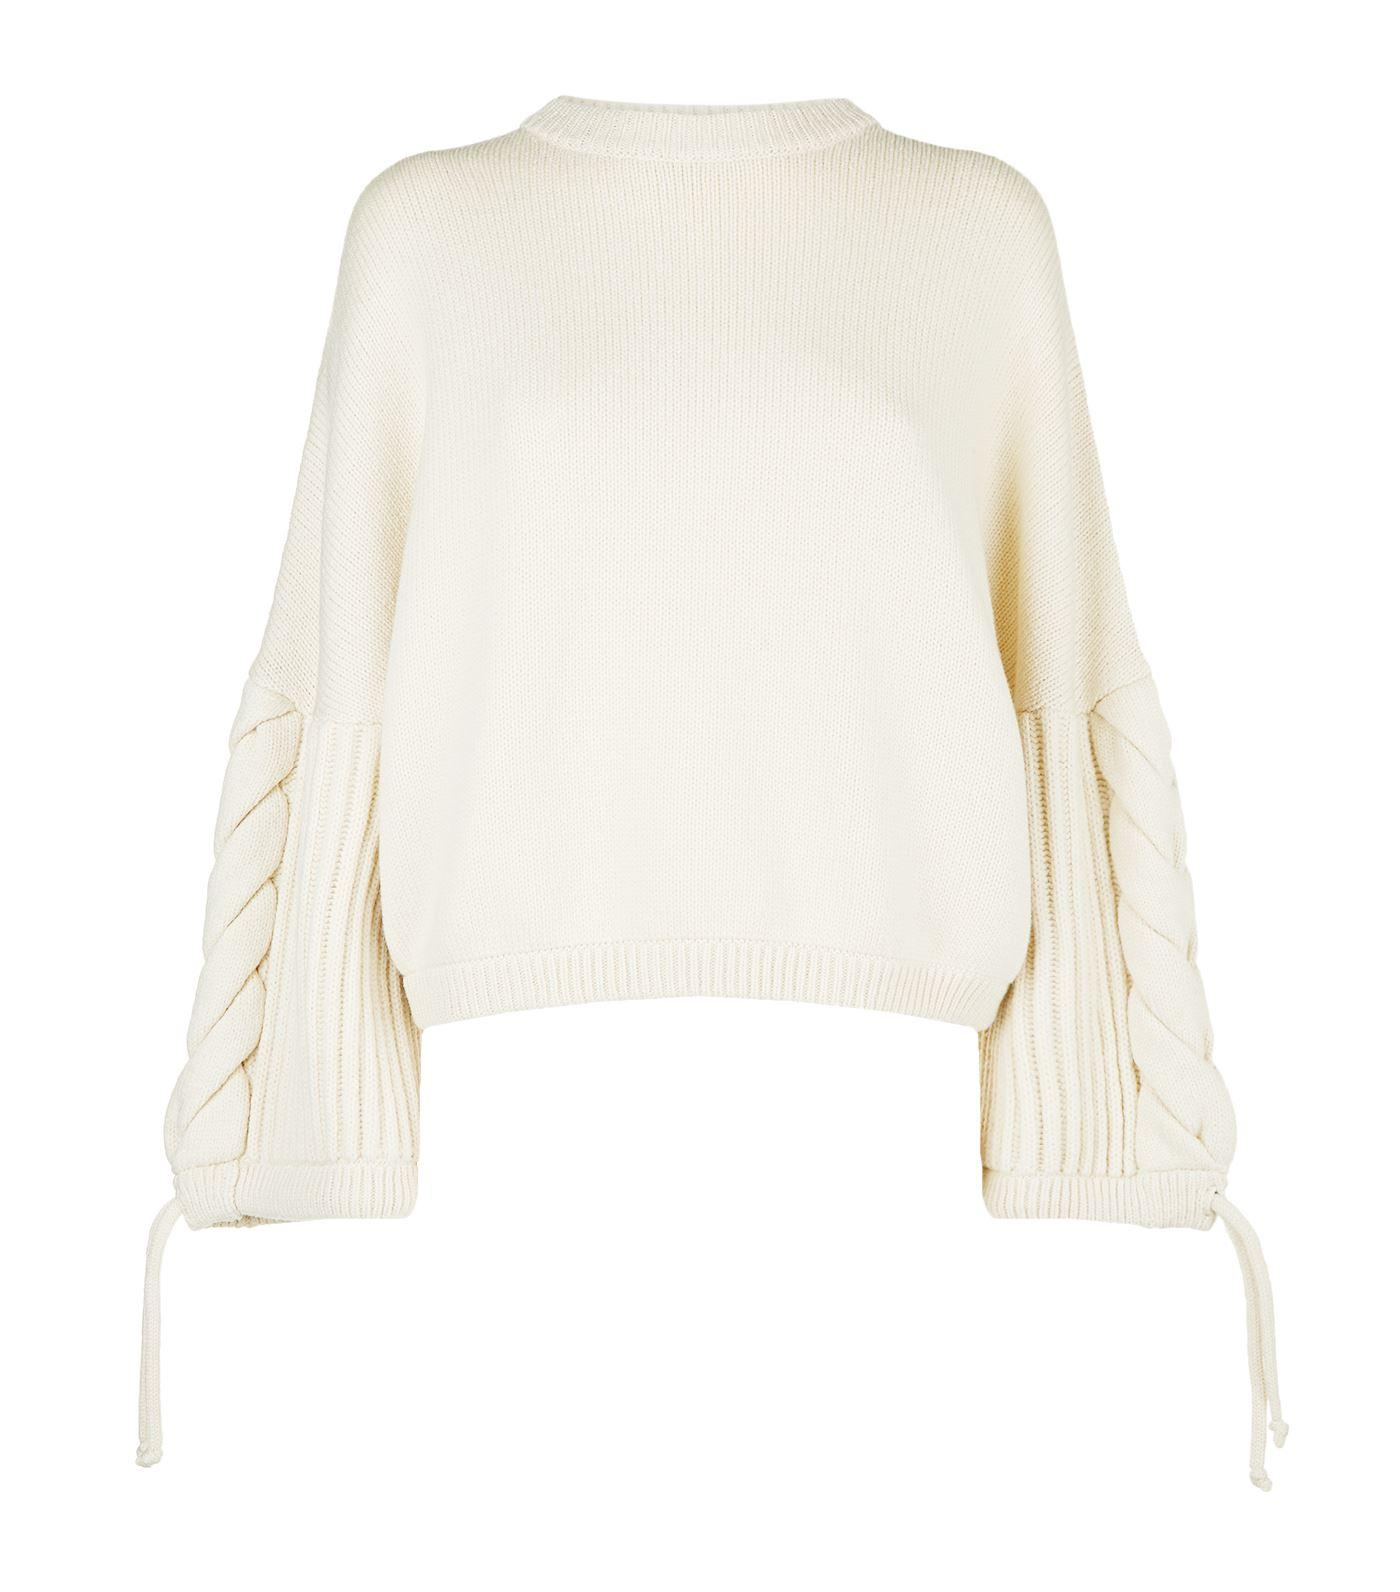 Sportmax Cropped Rib Knit Sweater In Ivory